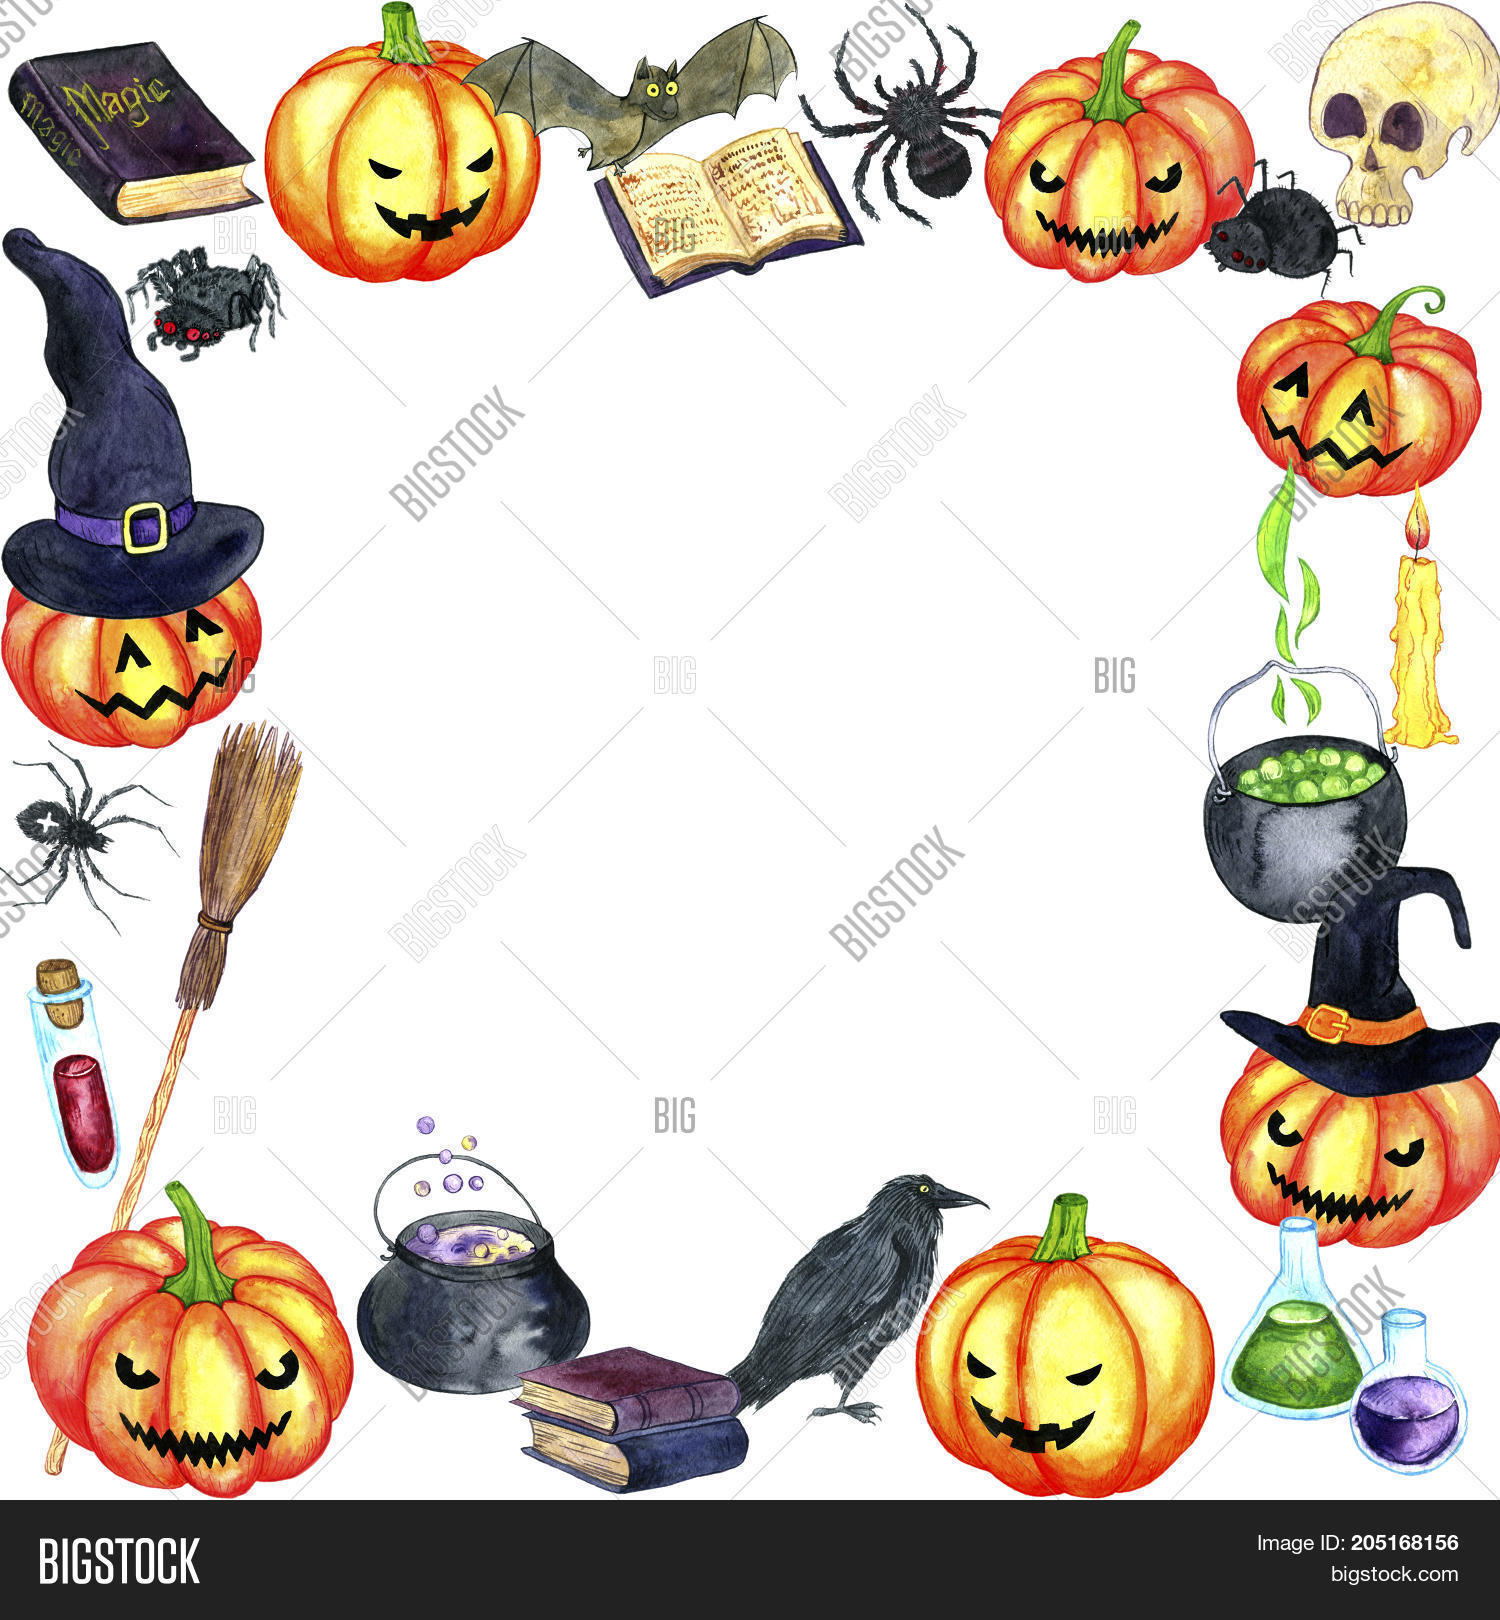 halloween template image photo free trial bigstock